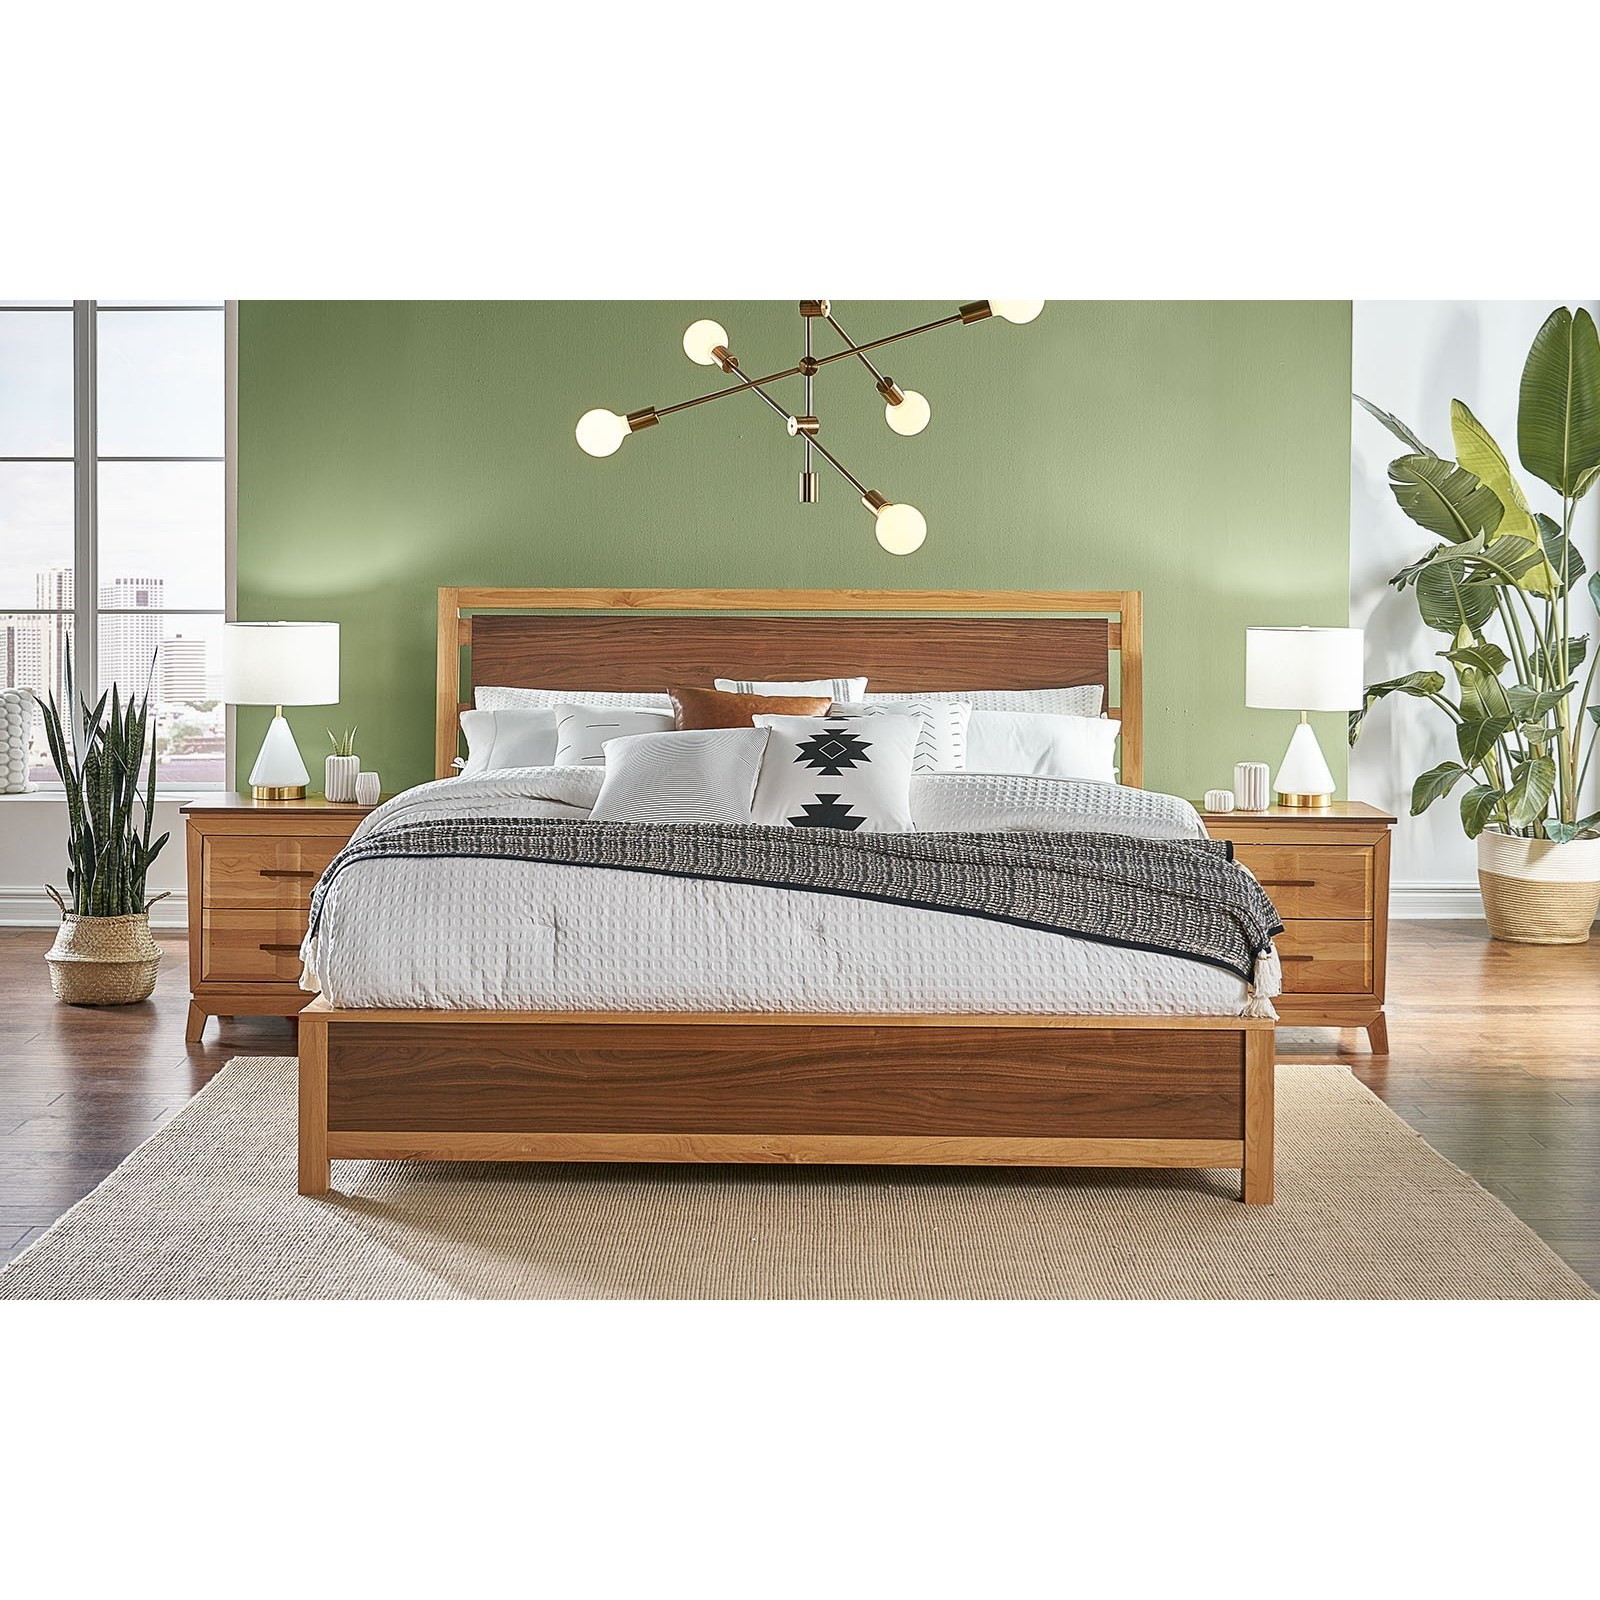 Modway Queen Low Profile Bed  by A-A at Walker's Furniture